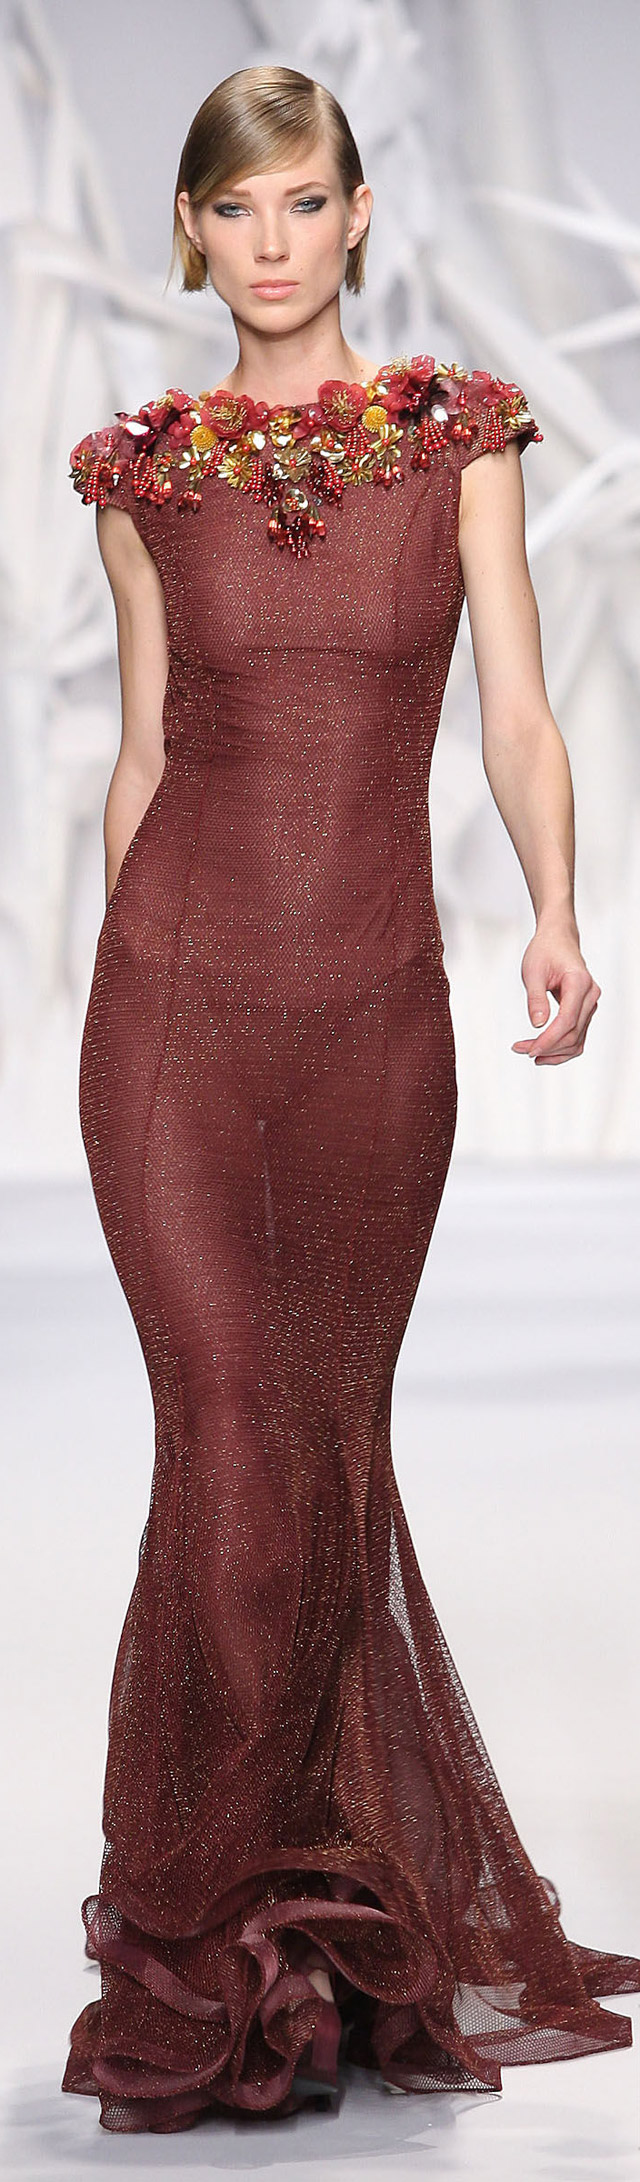 Abed Mahfouz Haute Couture Fall-Winter 2013-2014 (18)